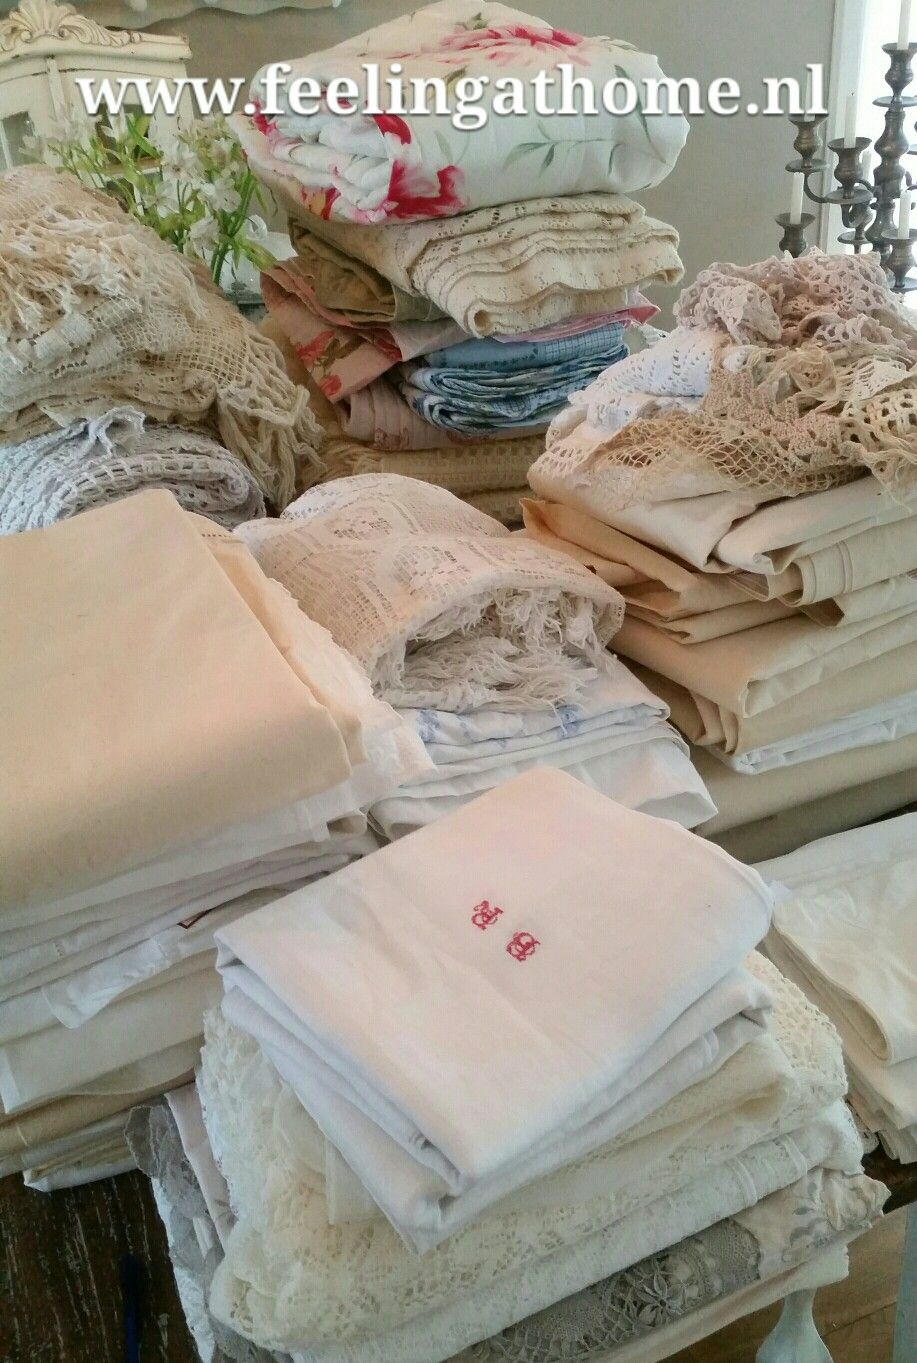 I went shopping for antique and vintage linen yesterday in France for my shop www.feelingathome.nl ♡♡  Don't you love it too?